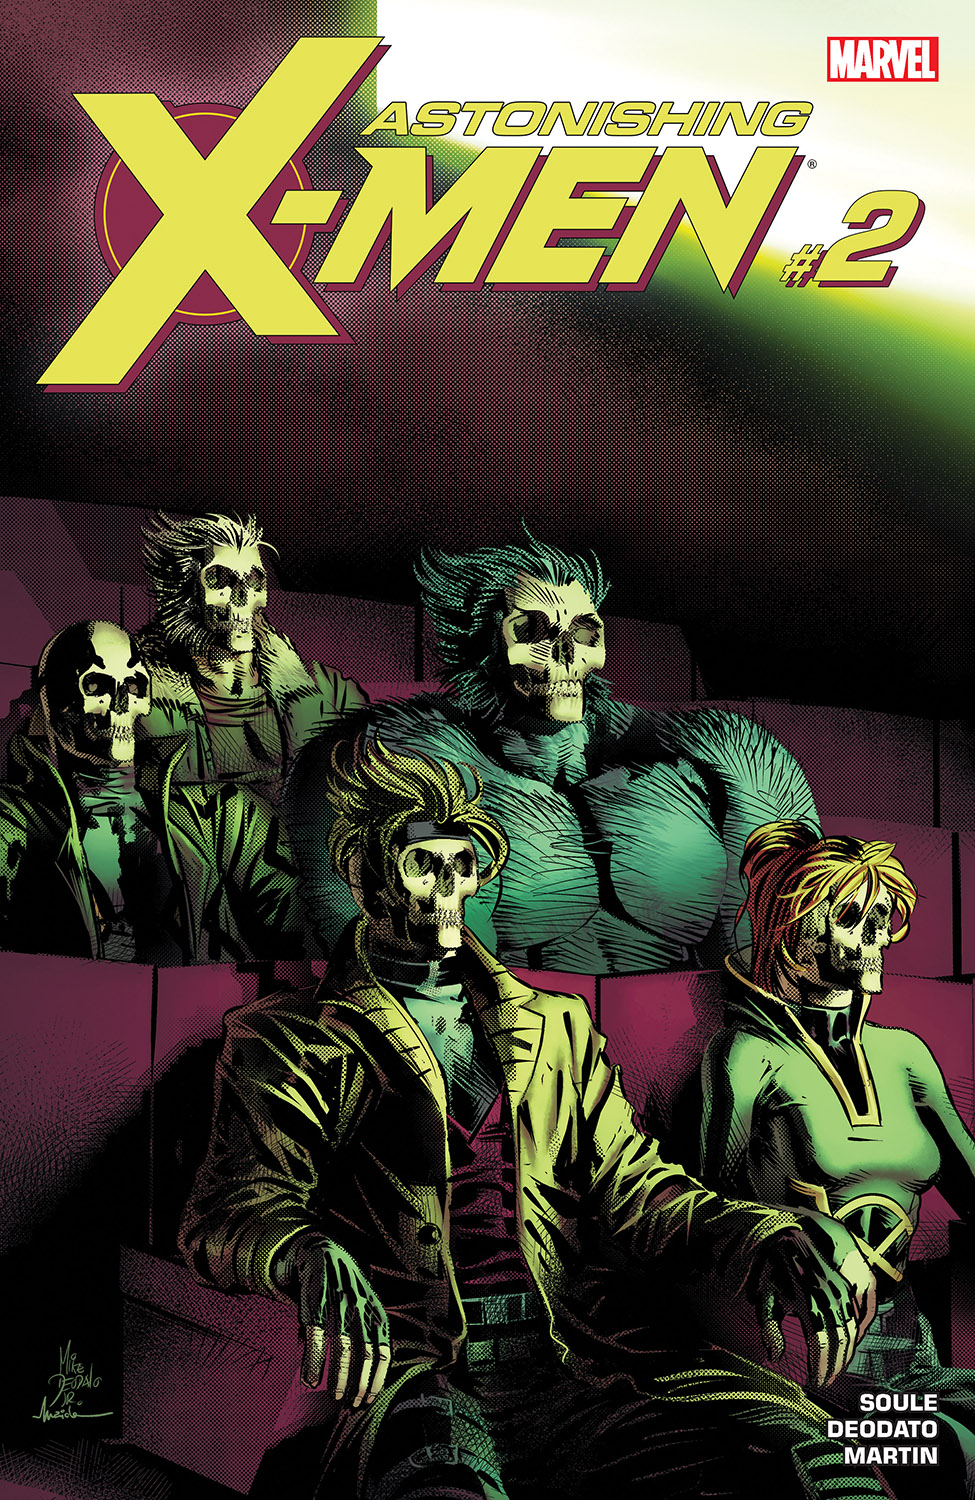 Astonishing X-Men (2017) #2